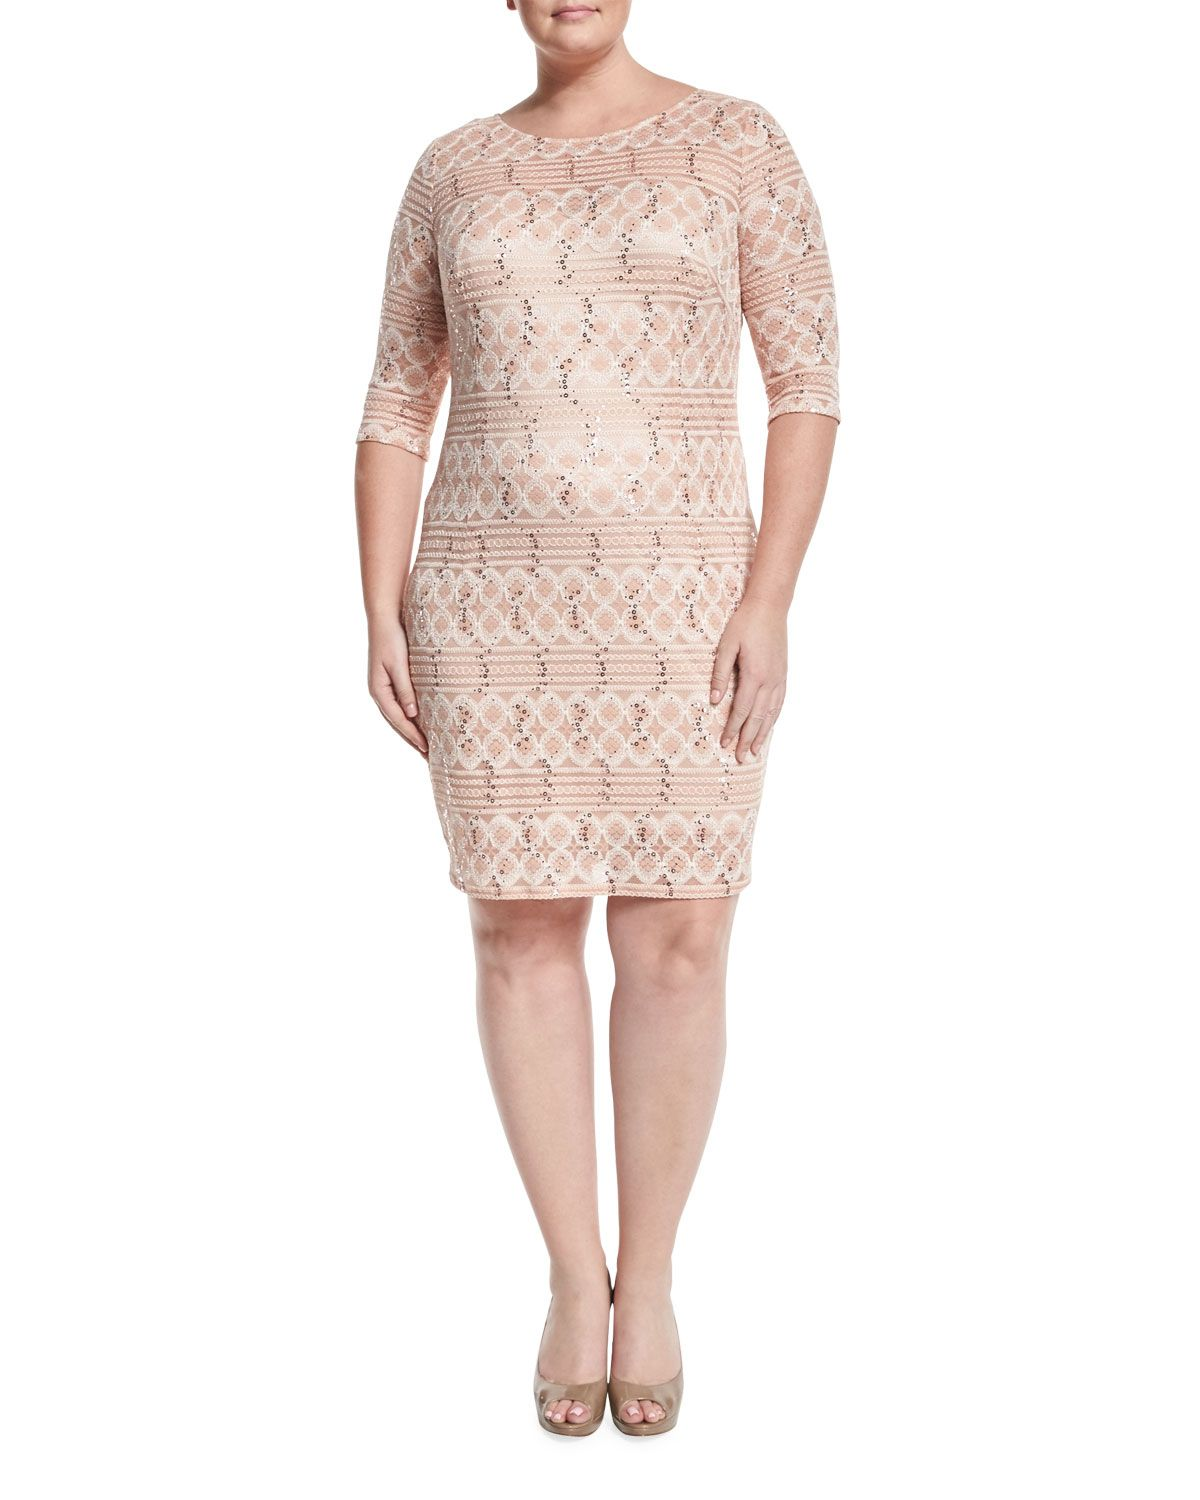 Jax 34 sleeve sequined lace sheath dress cameo rose plus size jax 34 sleeve sequined lace sheath dress cameo rose plus size ombrellifo Gallery